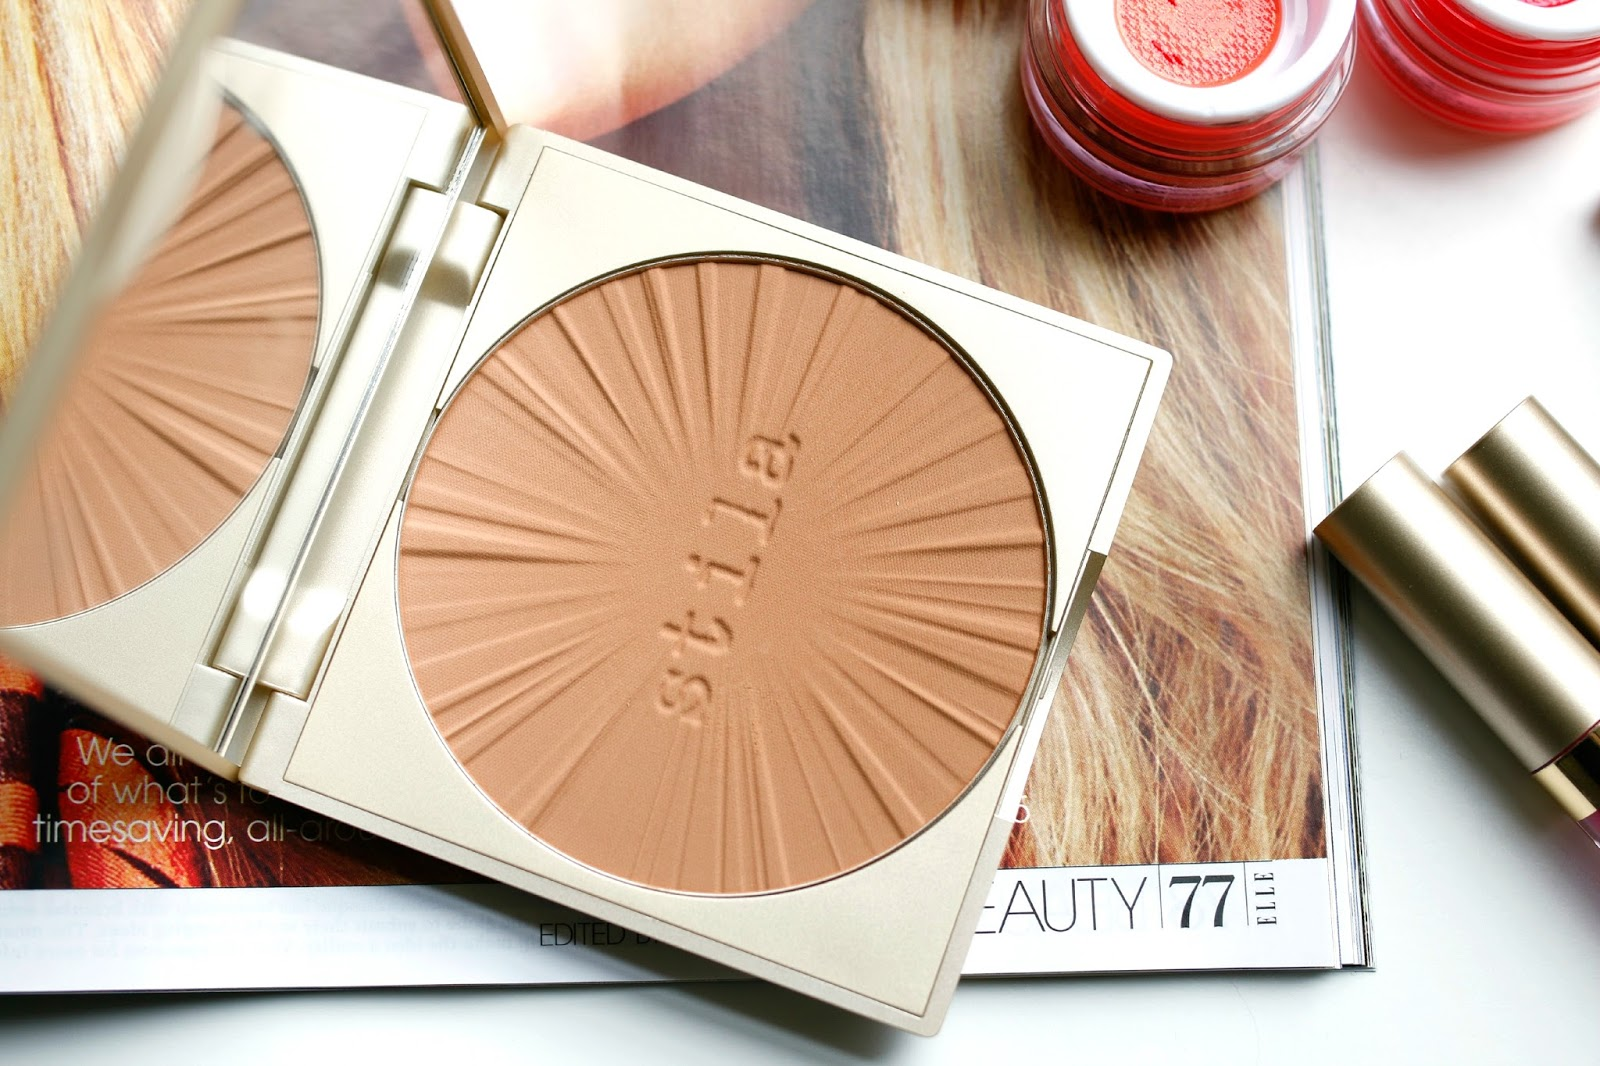 Stila bronzer for fair skin